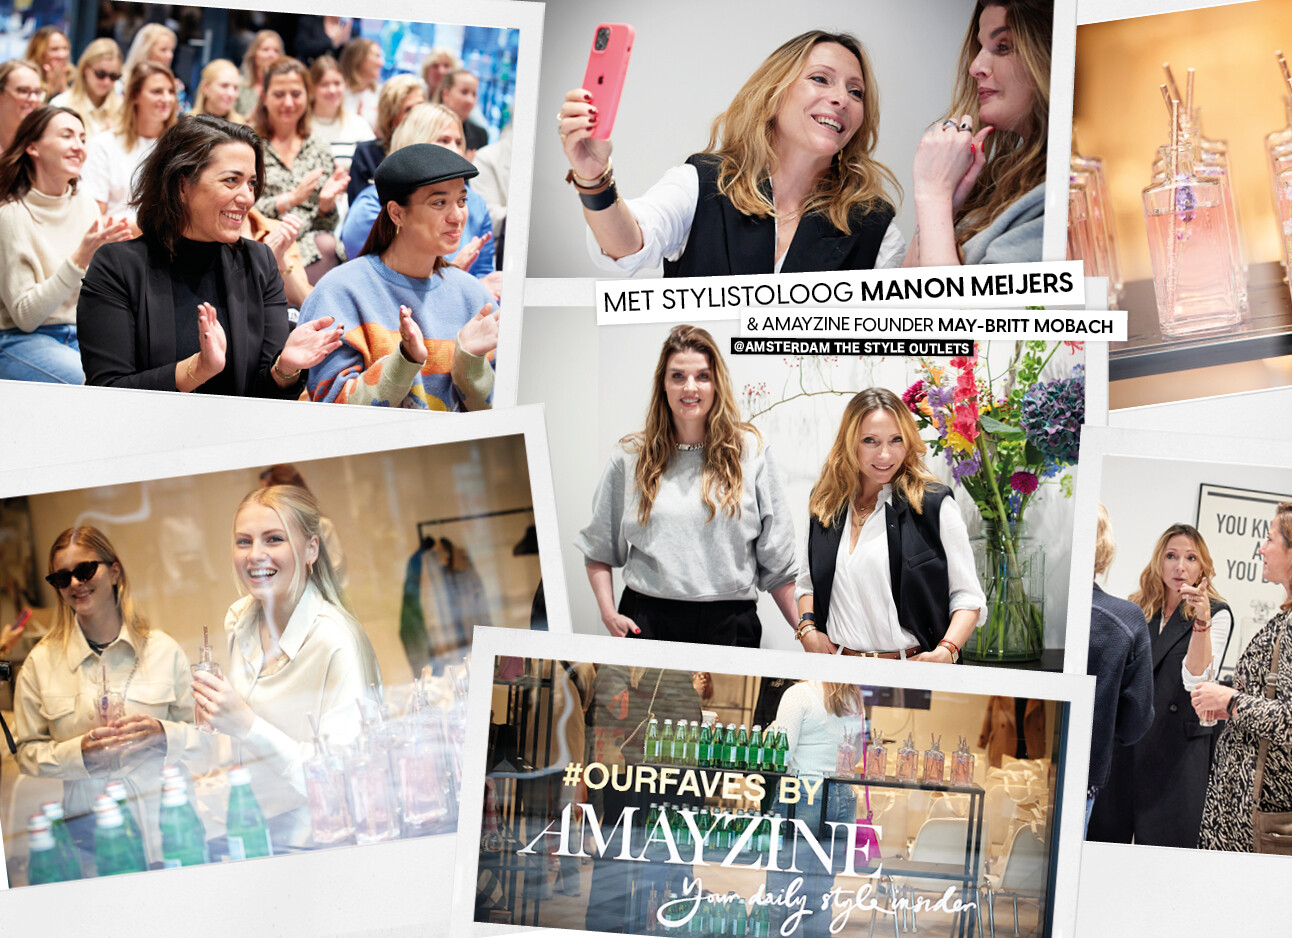 amsterdam the style outlets met may britt mobach en manon meijers